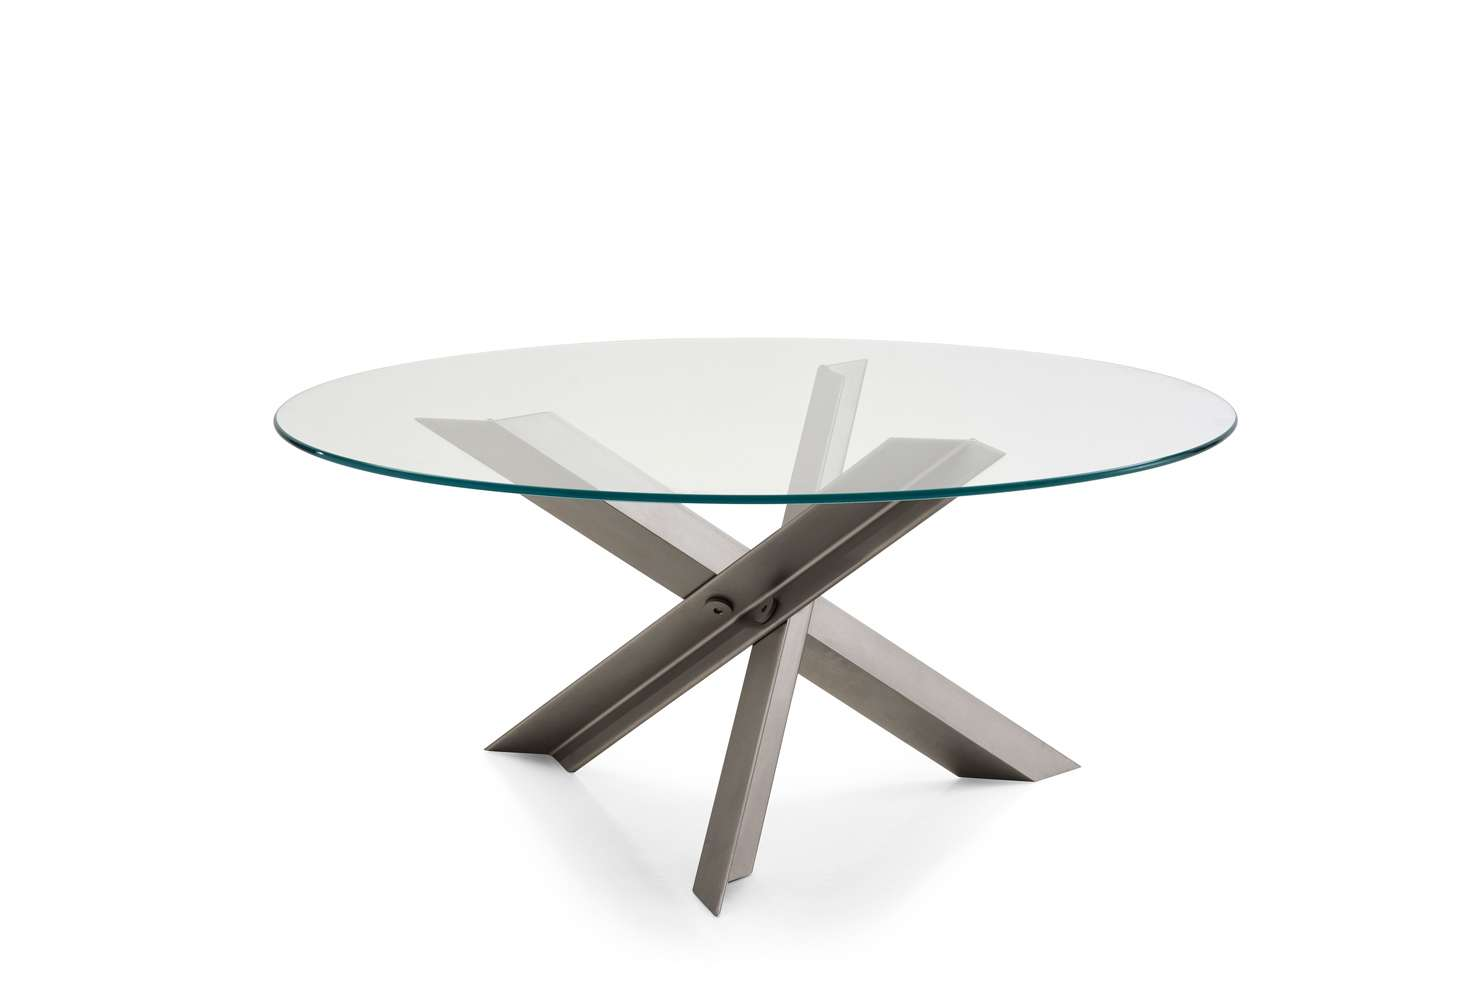 Mario-Bellini-Bolt-Table_02.jpg